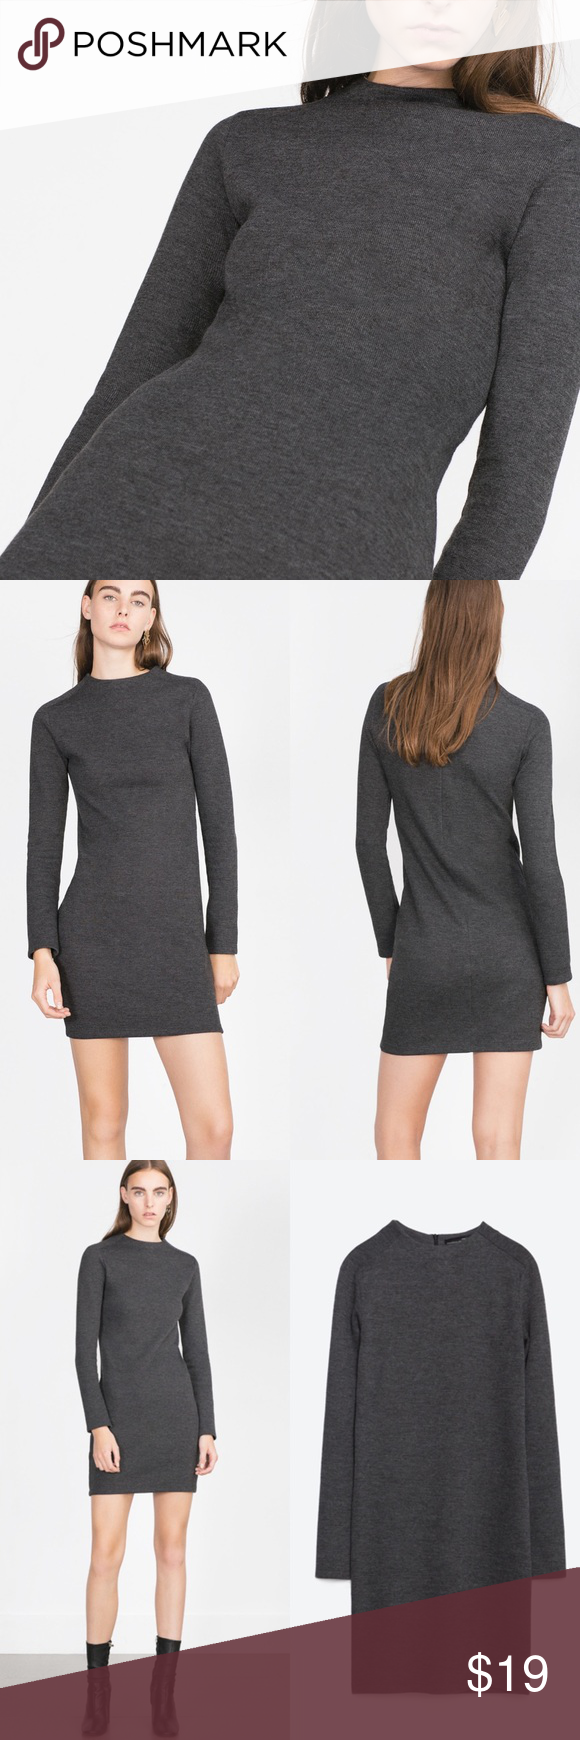 Zara knit dress zara dresses conditioner and minis